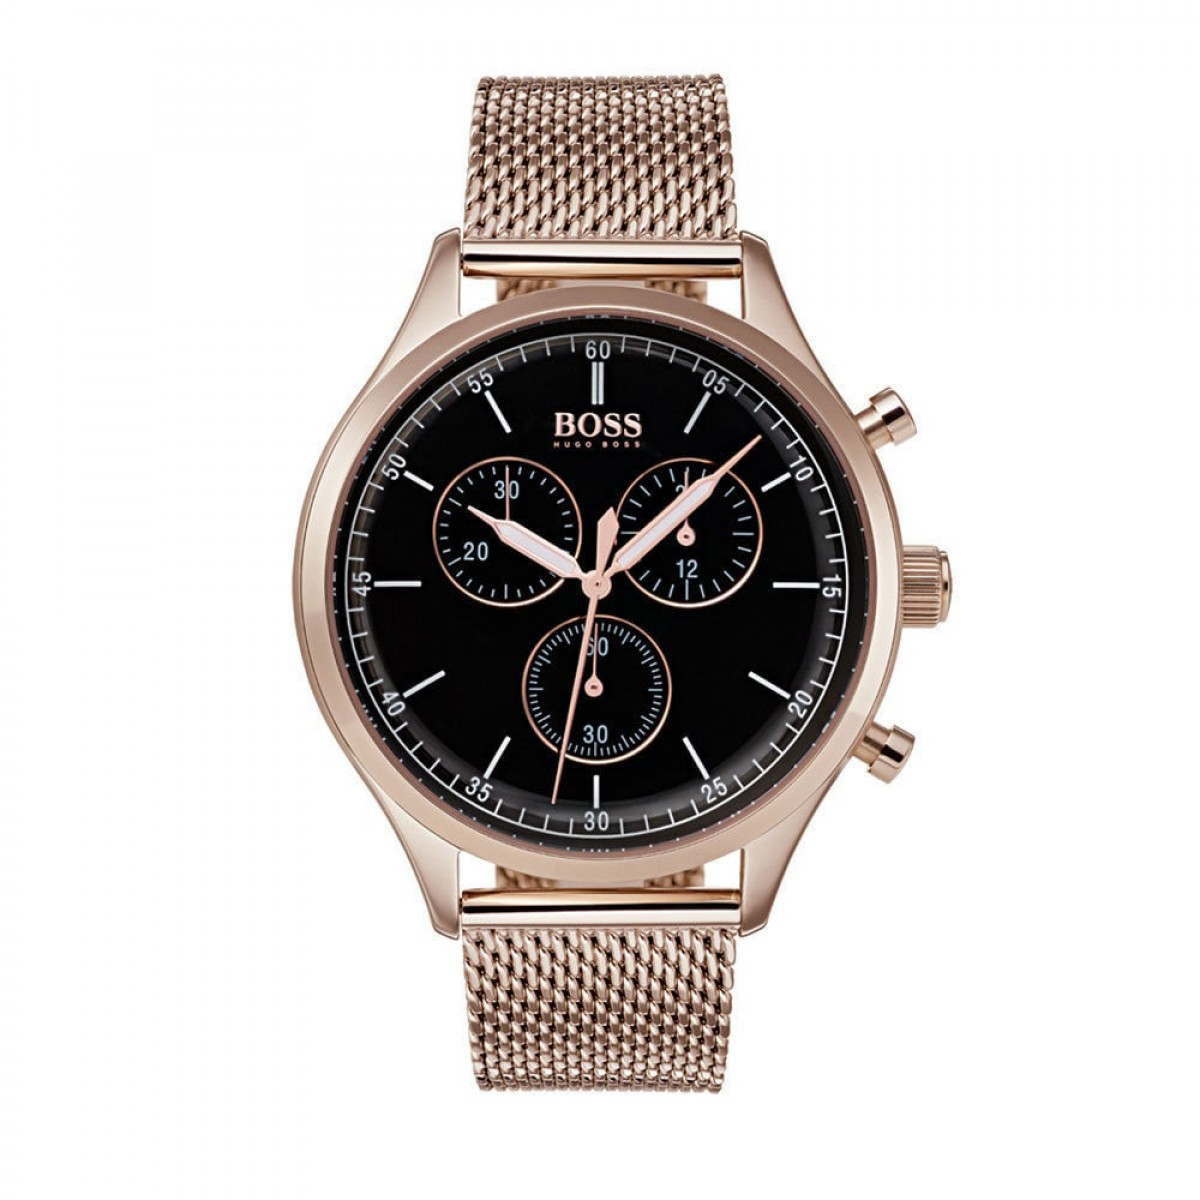 Mens Hugo Boss Companion Chronograph Watch 1513548